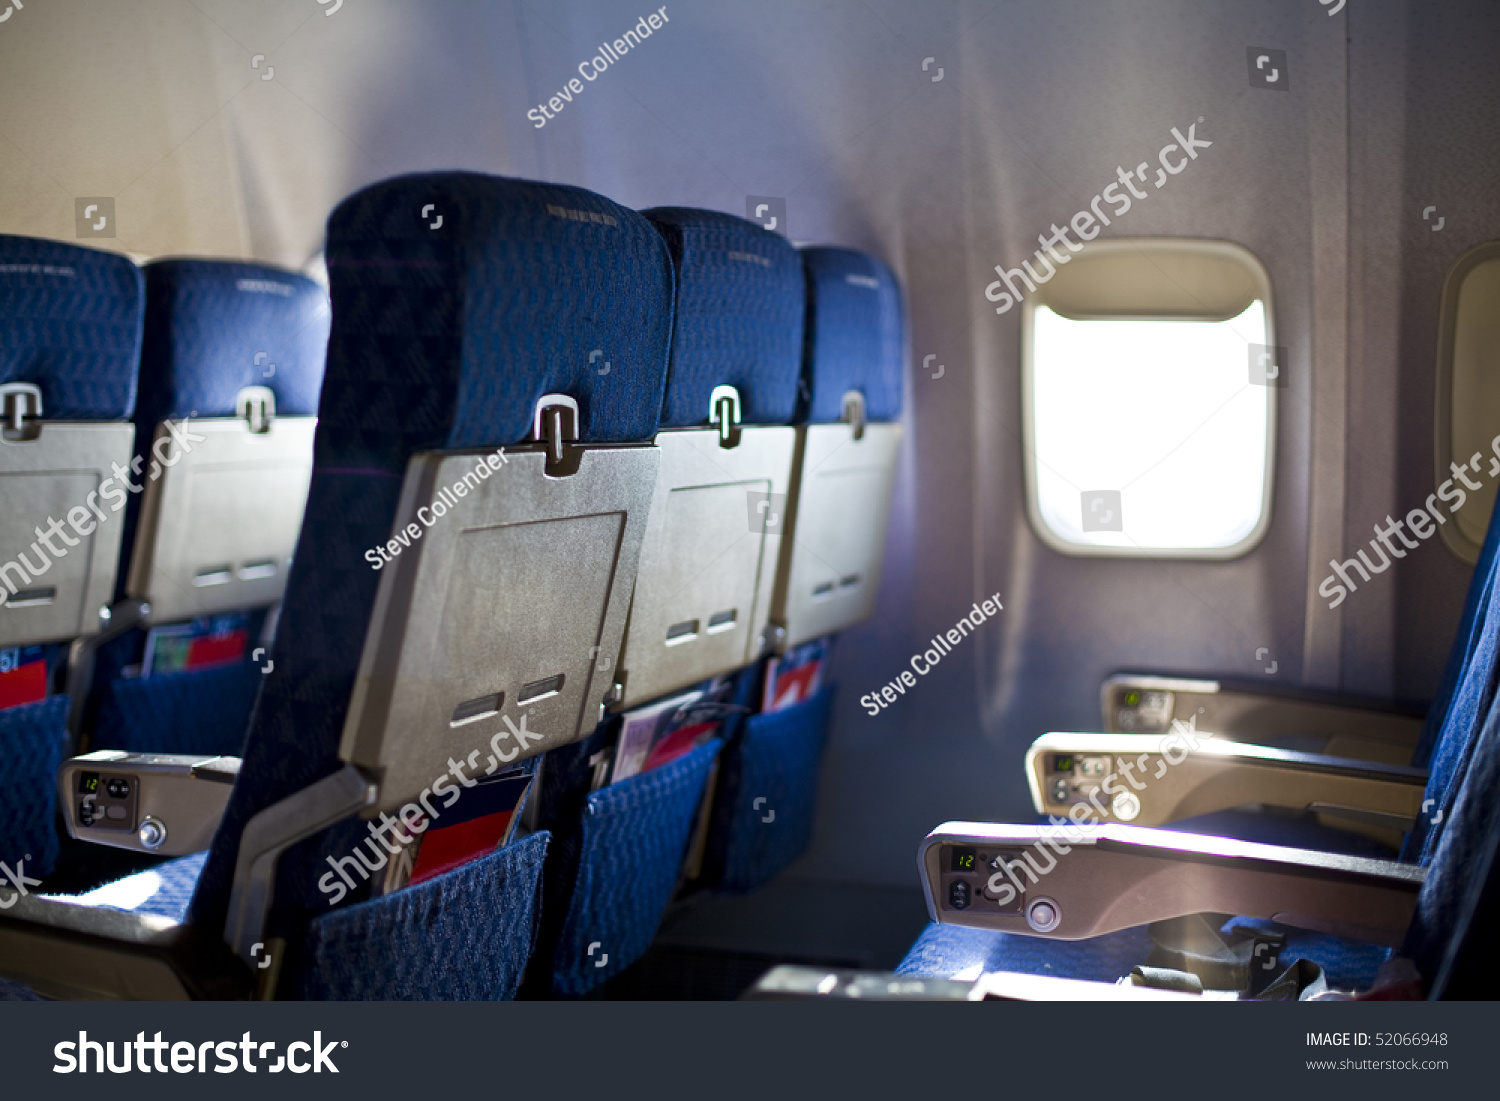 Airplane Seat Window Inside Aircraft Focus Stock Photo